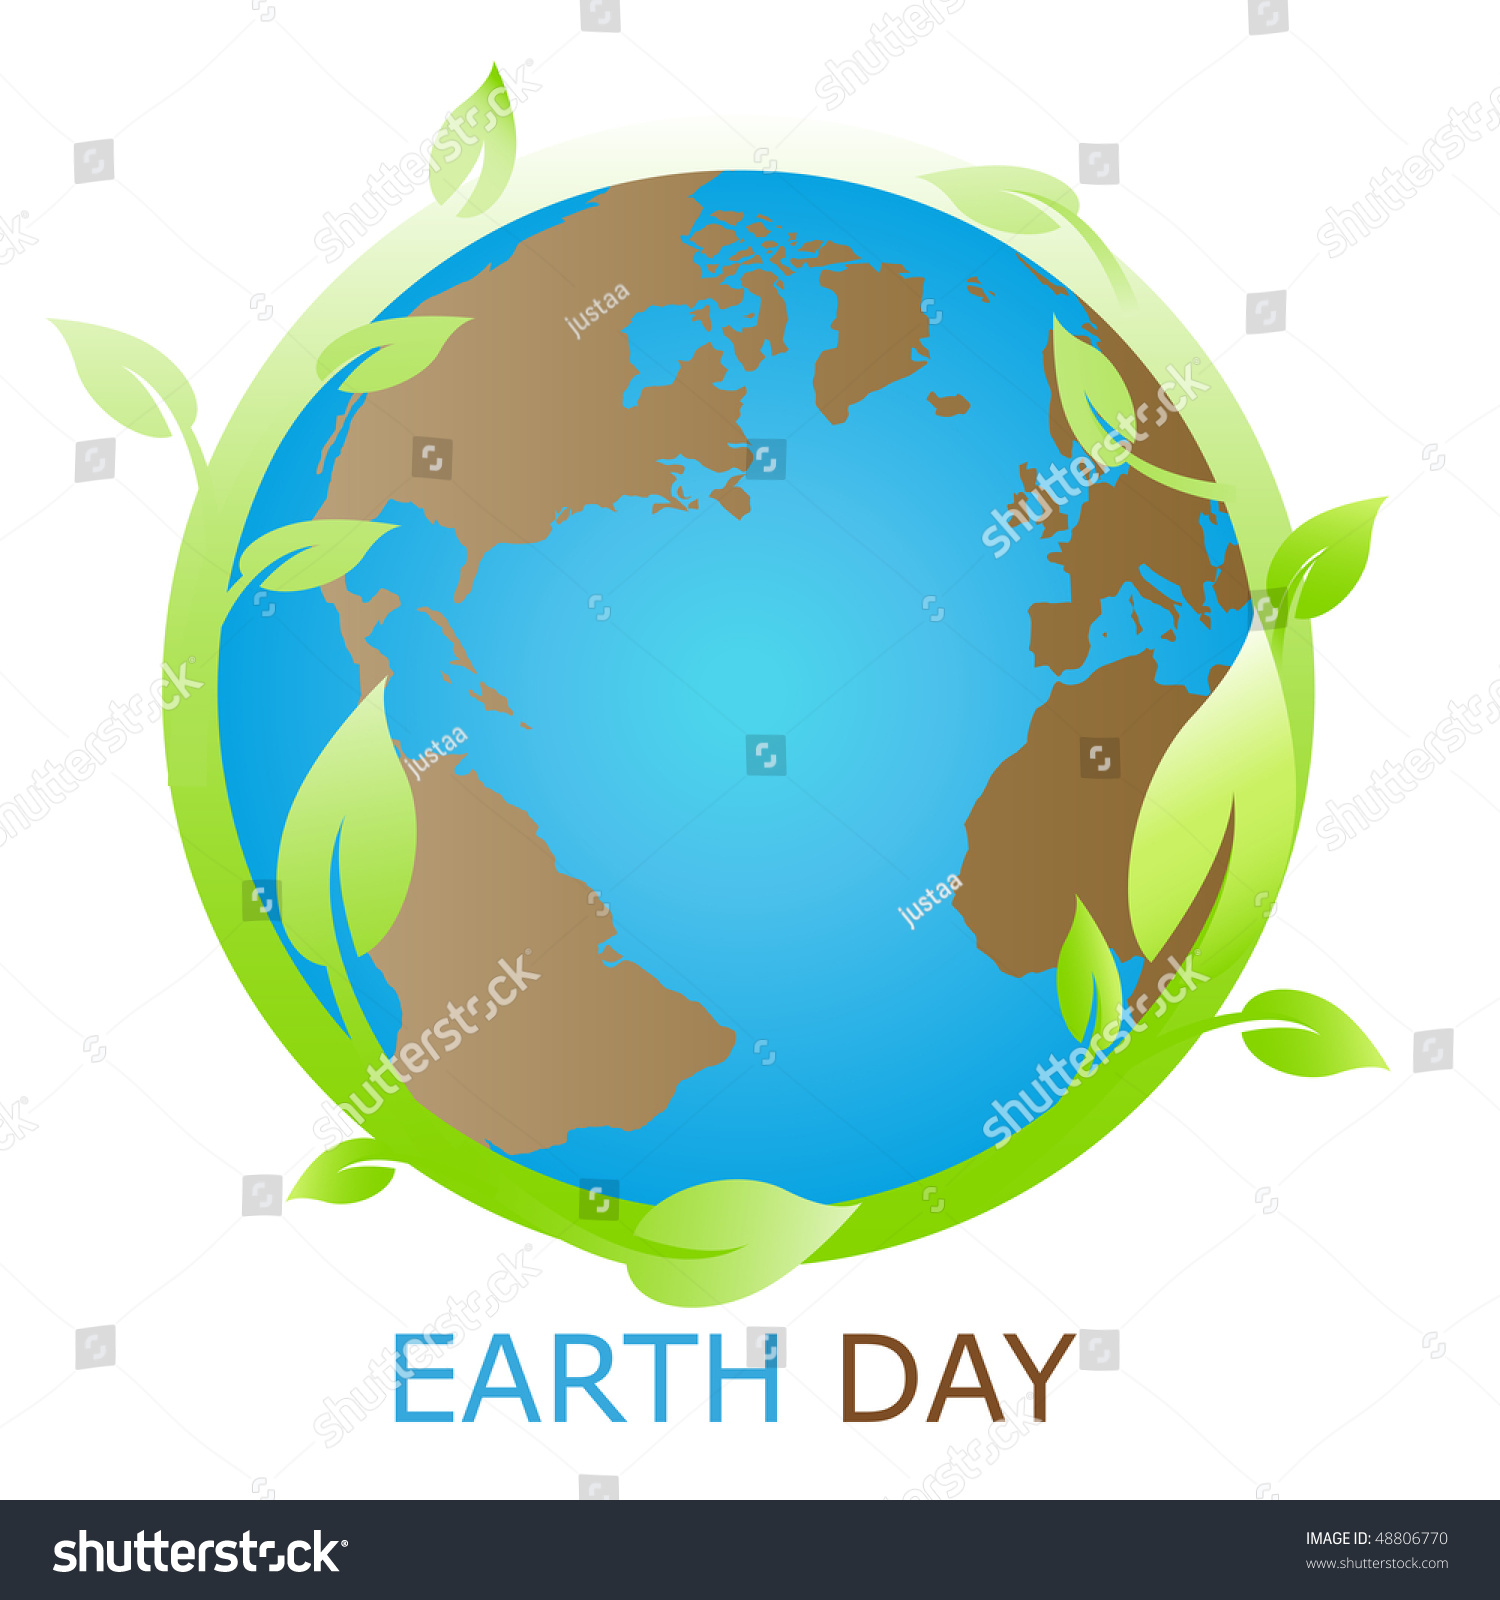 Planet symbol earth day stock vector 48806770 shutterstock planet symbol earth day buycottarizona